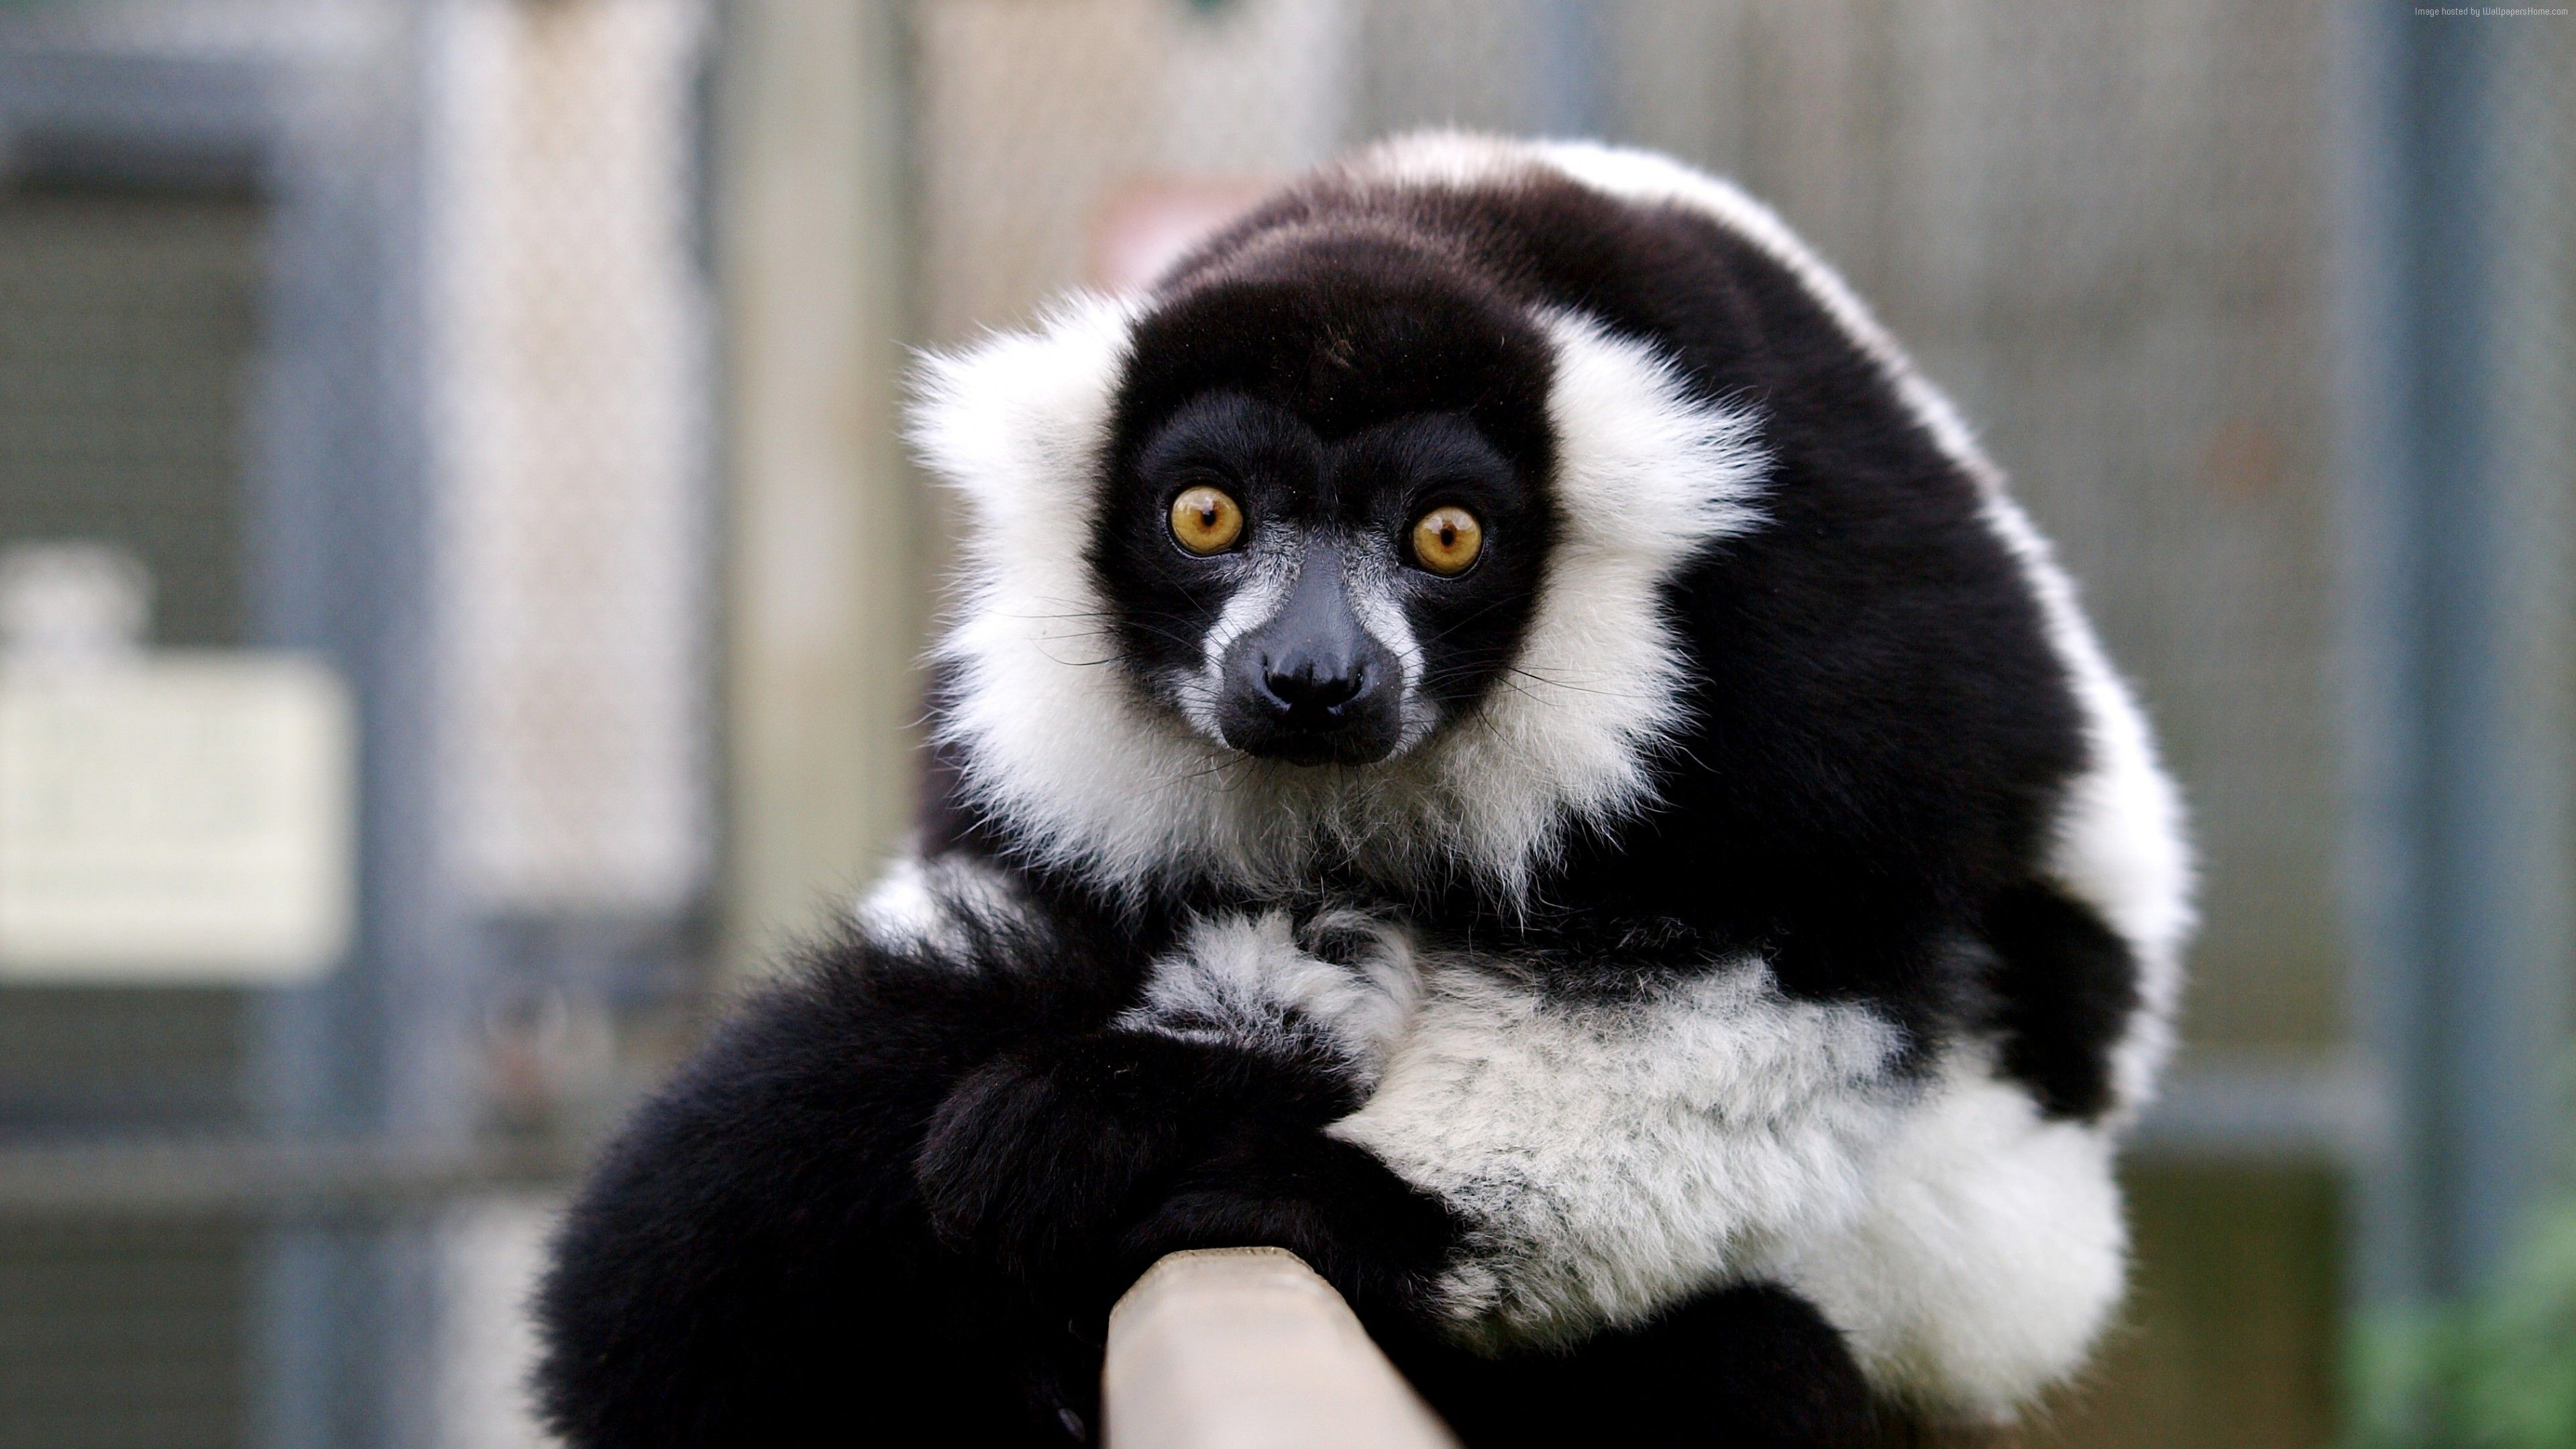 Wallpaper Lemur, Cute Animals, Funny, Animals Httpswwwpxwall